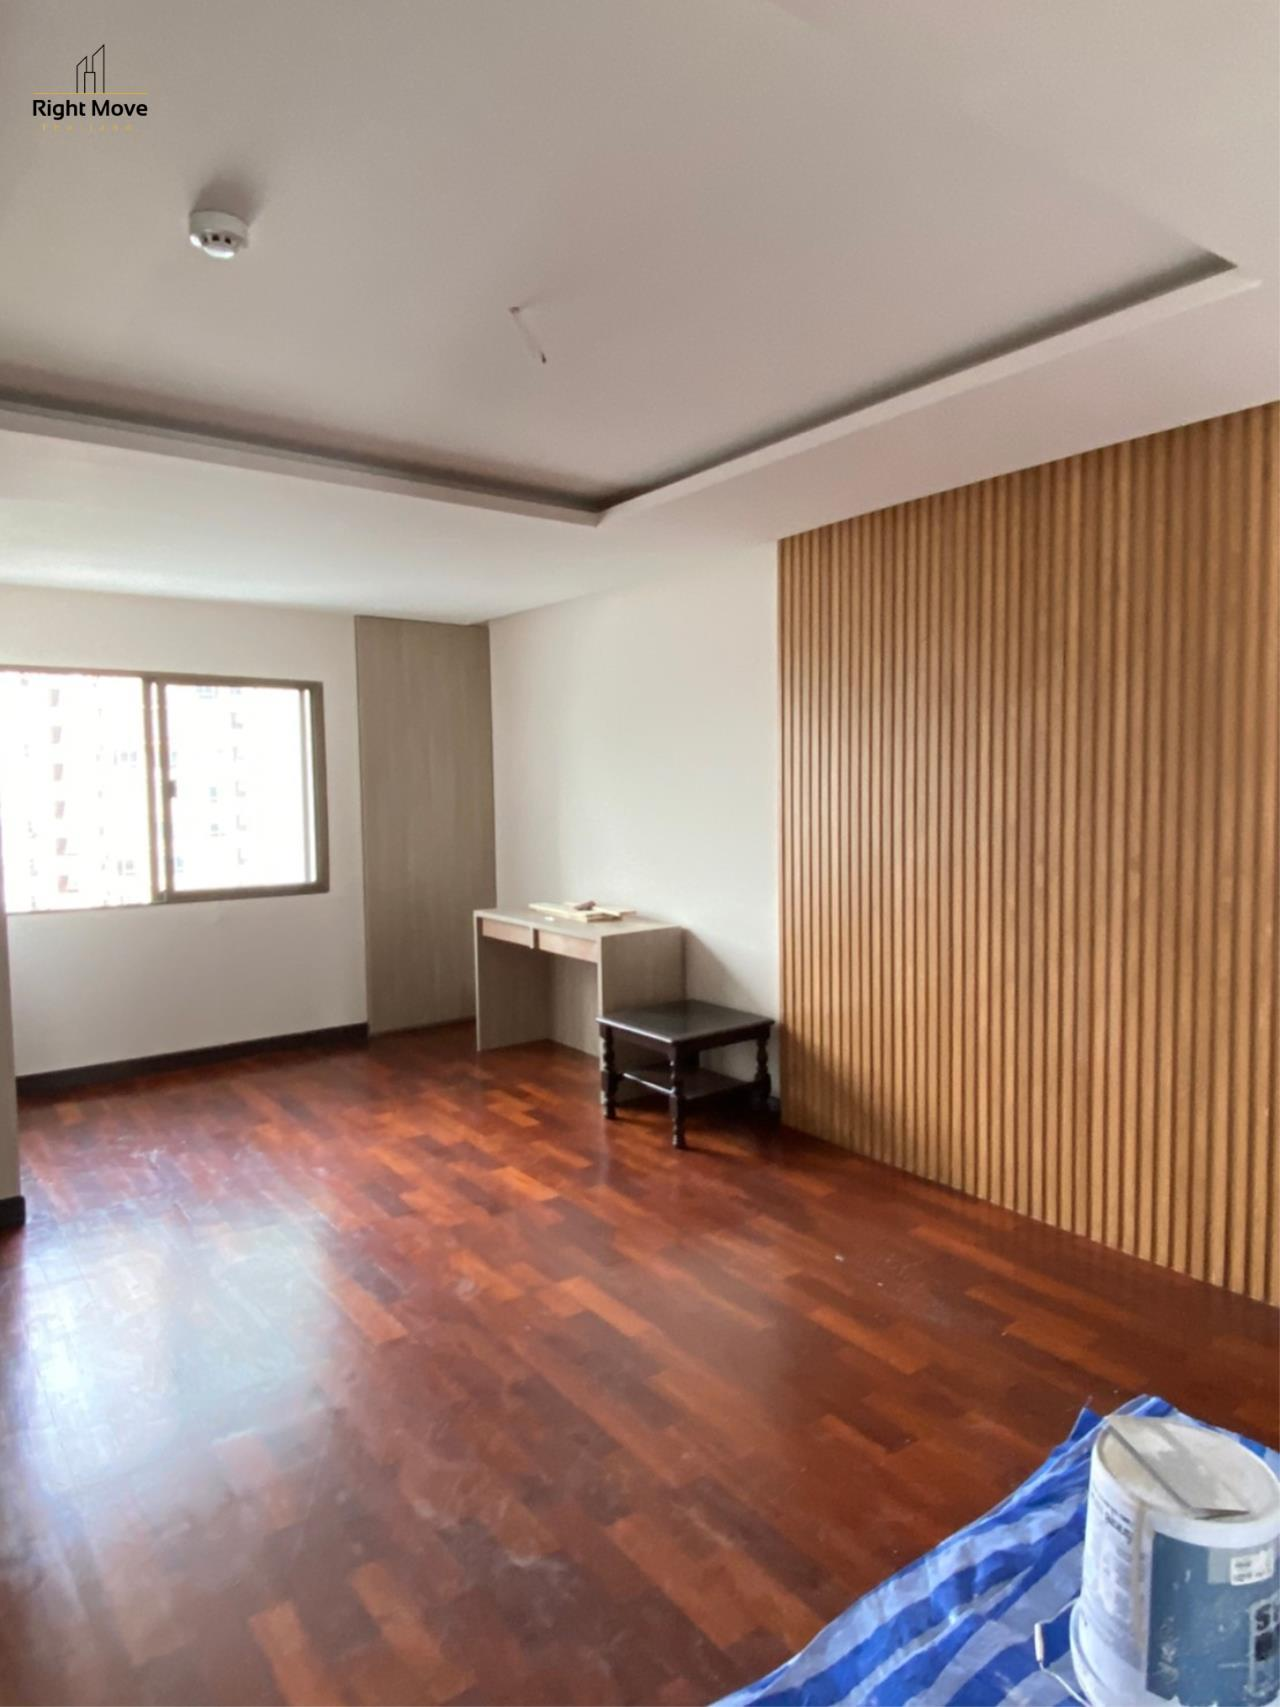 Right Move Thailand Agency's CA7255 Regent On The Park I For Rent 80,000 THB 250 Sqm 3 Bedrooms 6